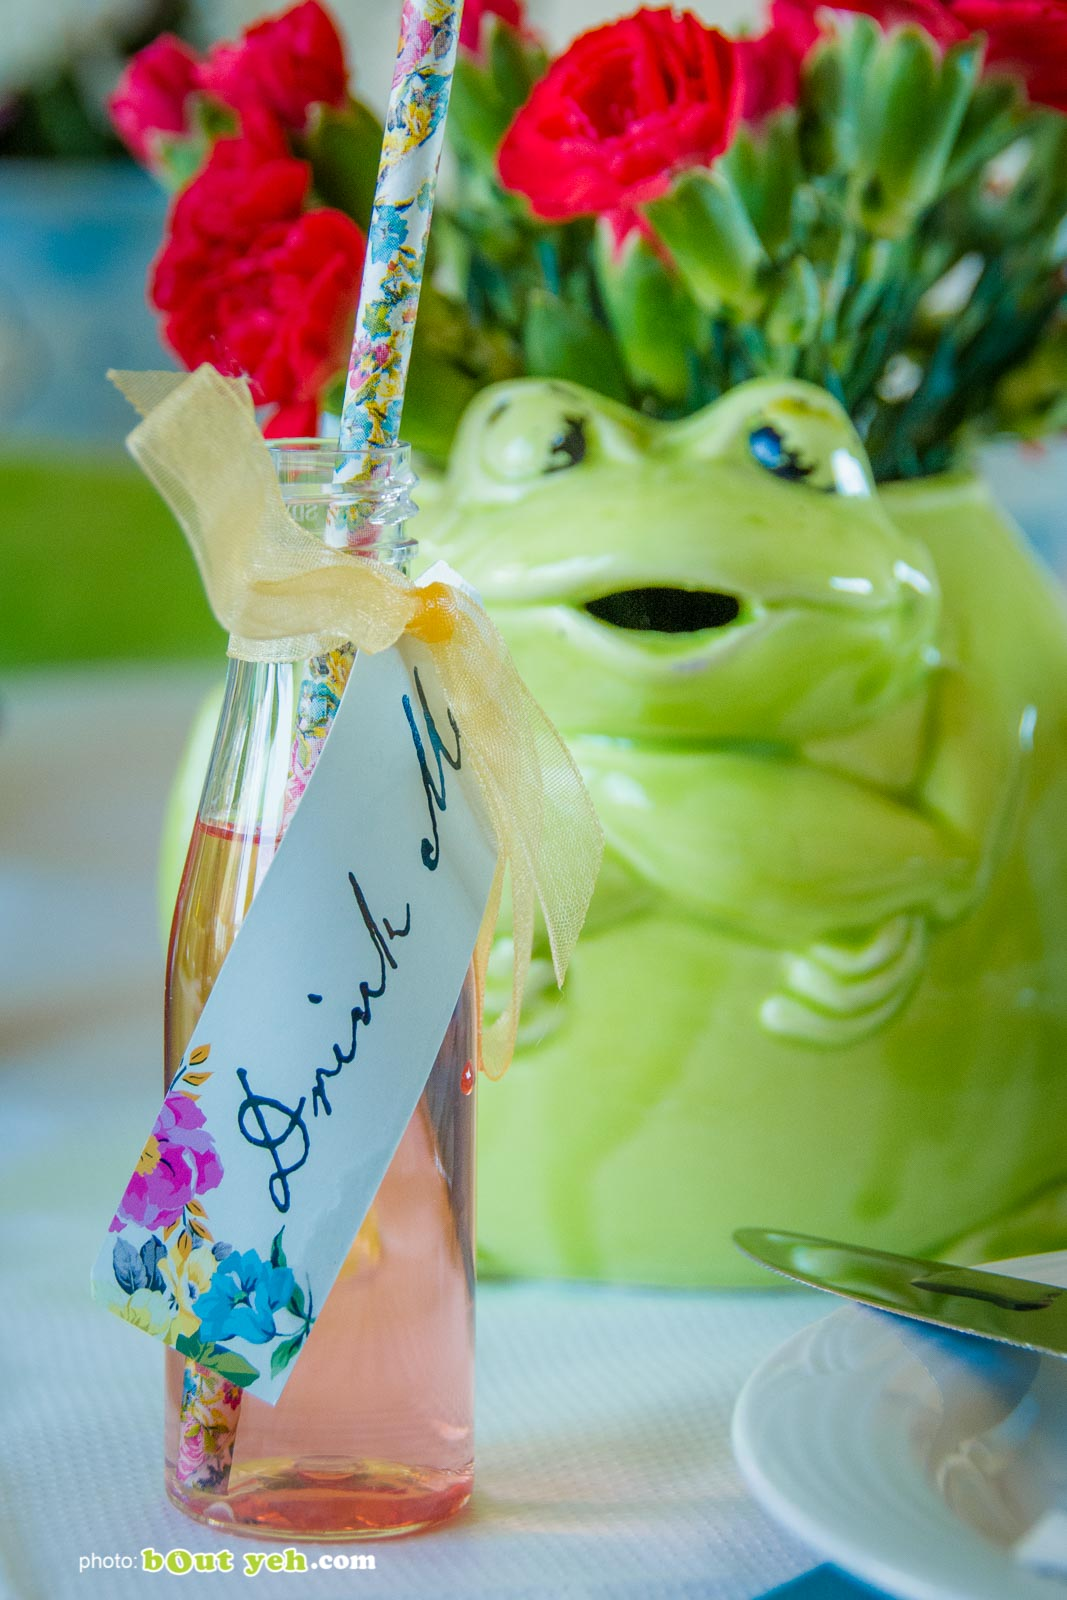 Drink Me illustration on small bottle at the Bout Yeh Brexit Mad Hatters Tea Party - photo 9233 by Bout Yeh photographers and video production Belfast Northern Ireland